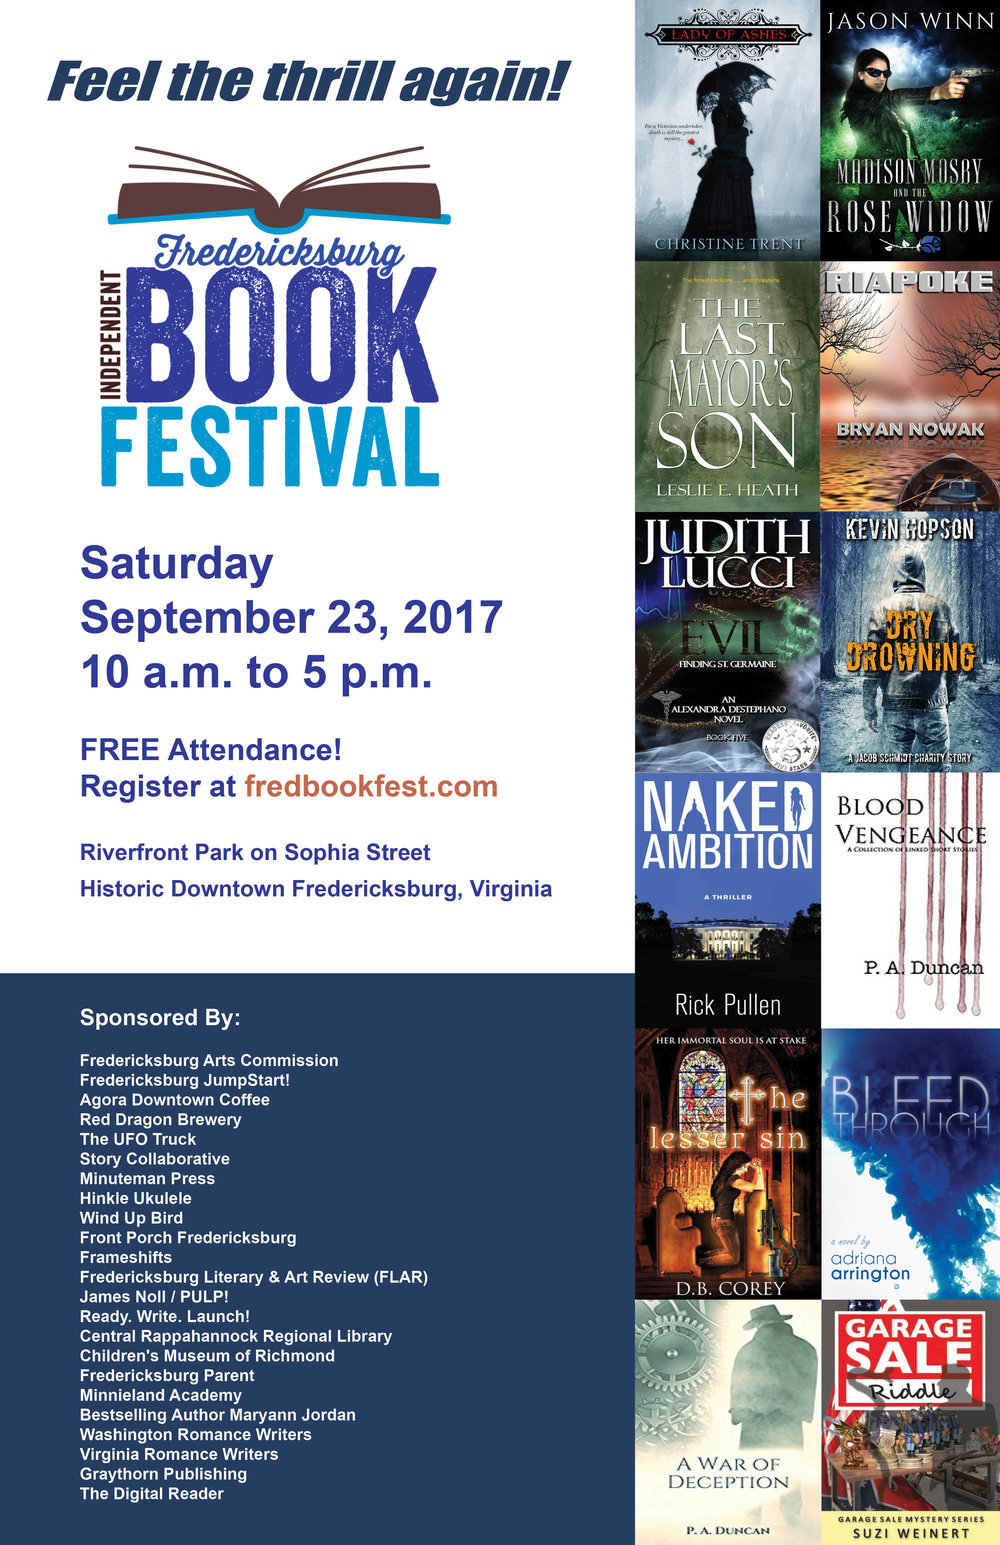 FBF 2017 Suspense Authors Poster.jpg